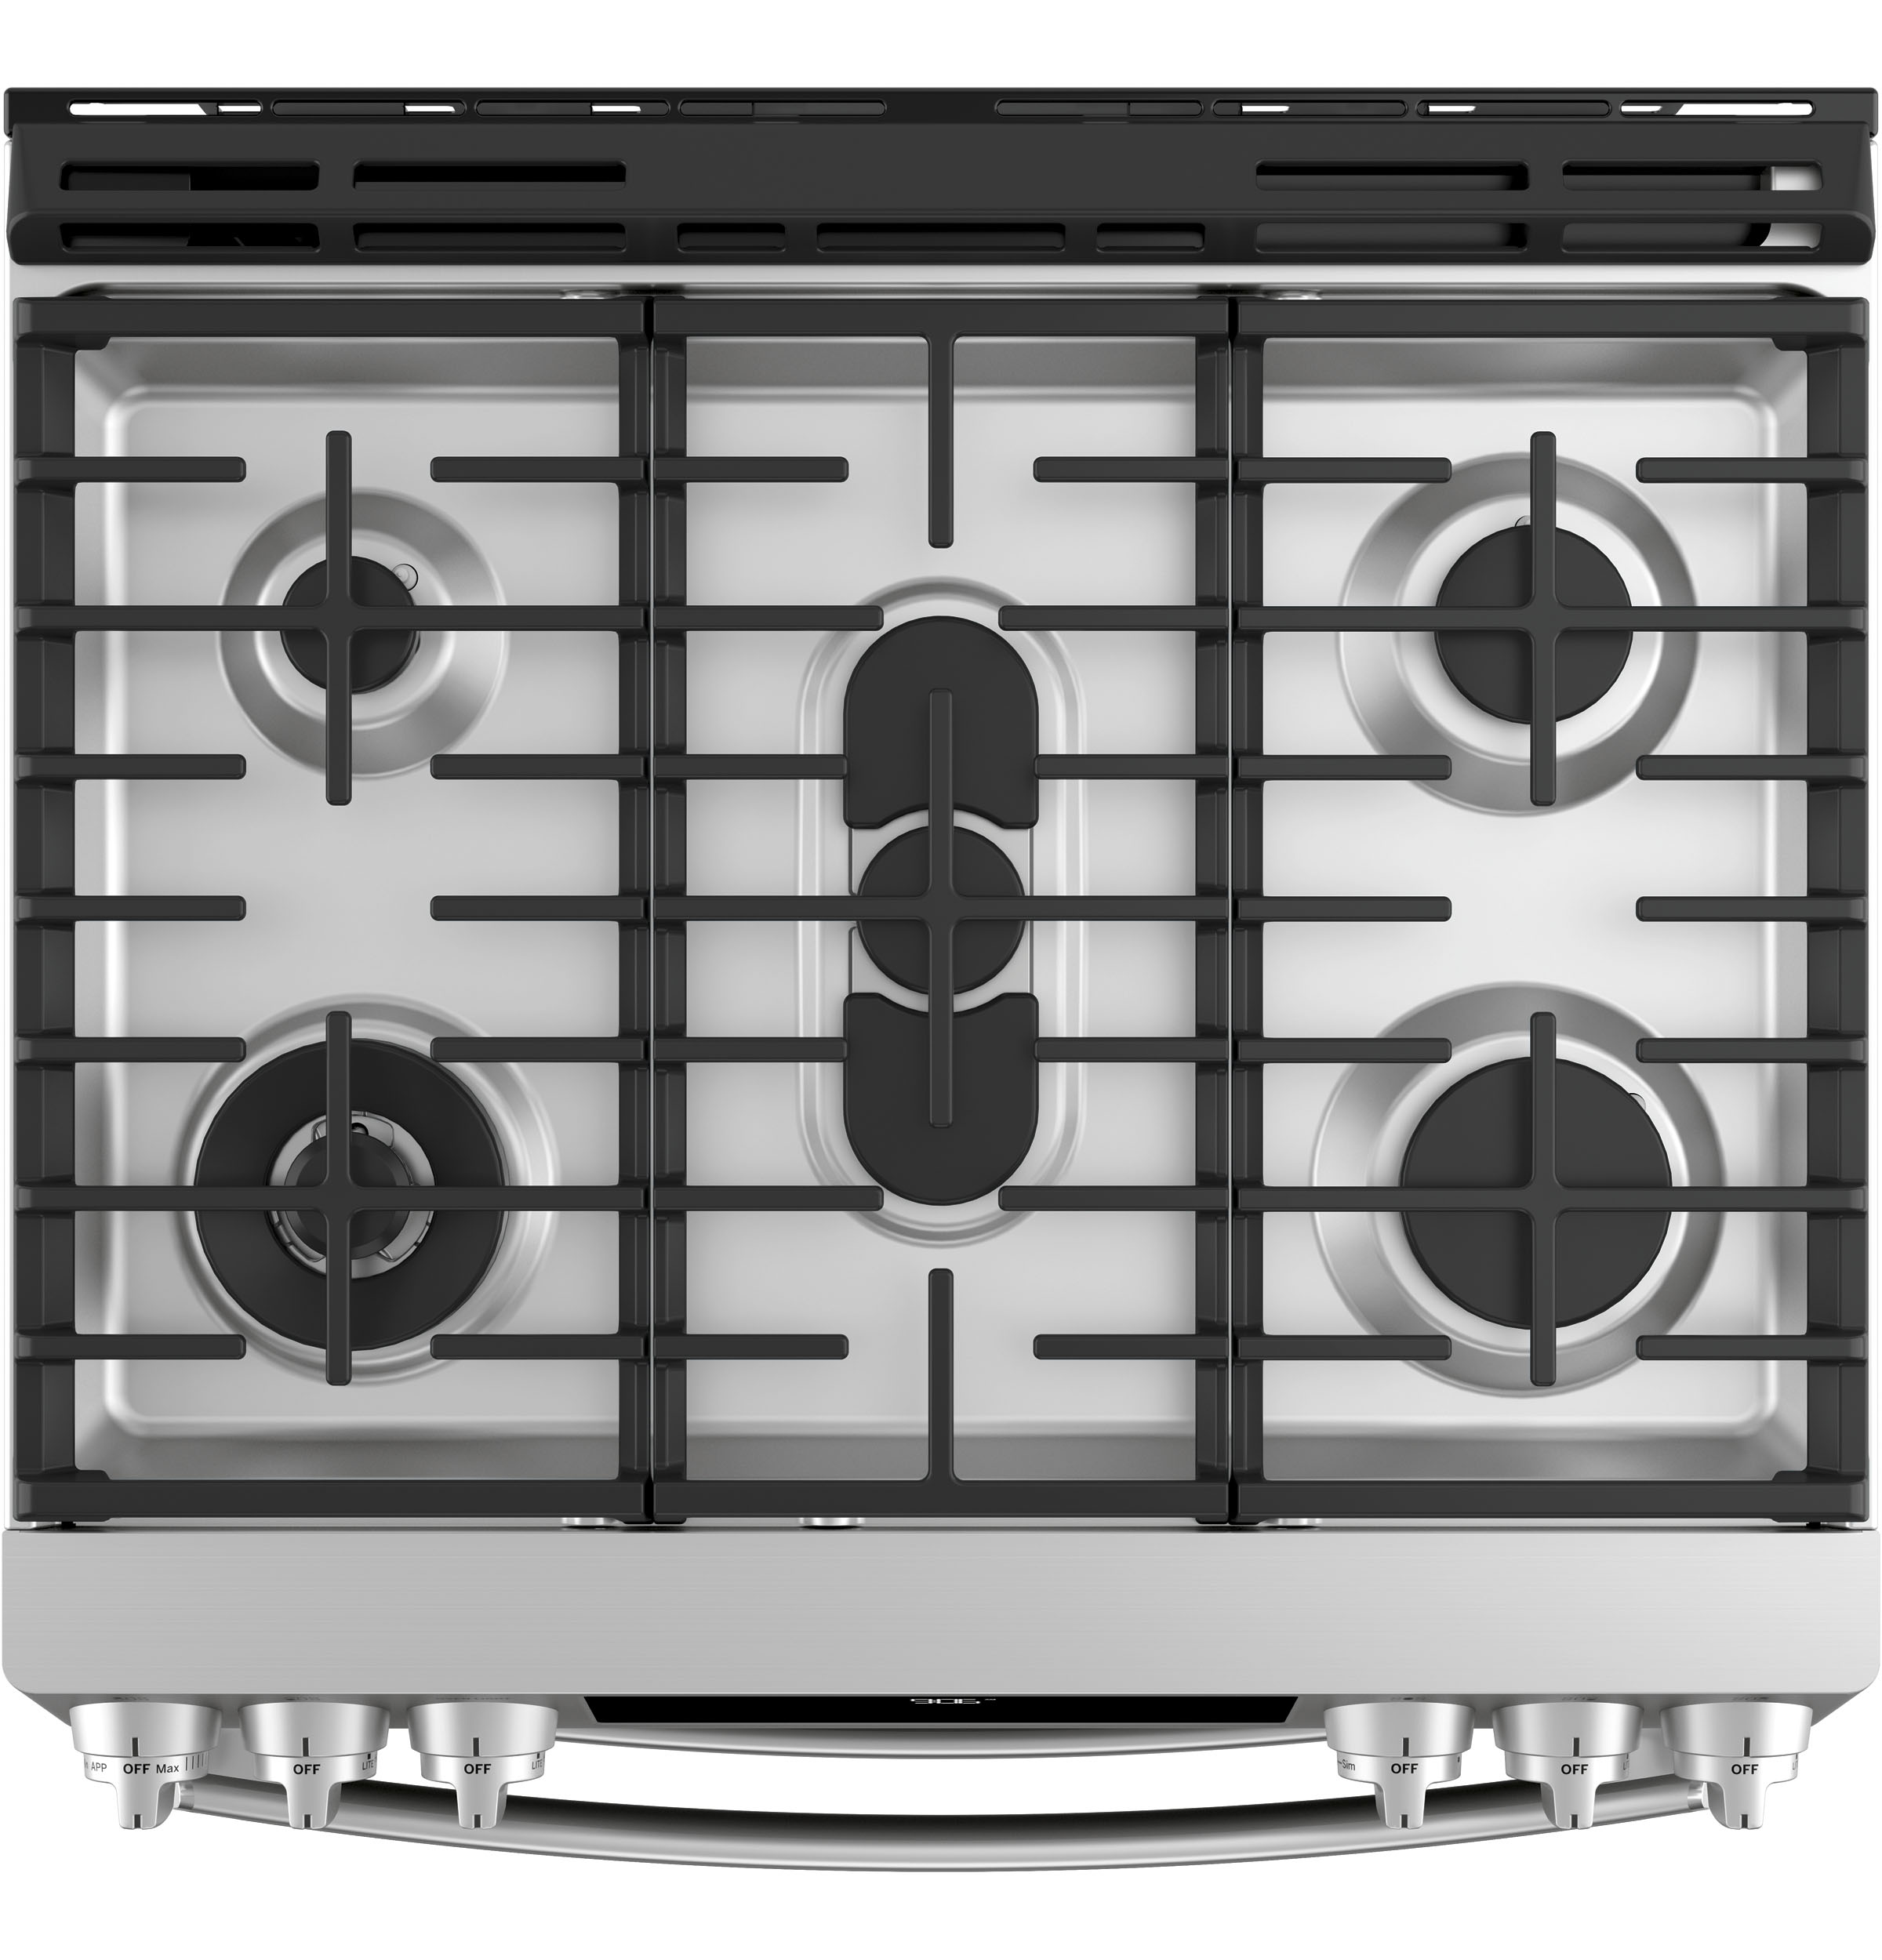 "Model: PGS960SELSS | GE Profile GE Profile™ Series 30"" Slide-In Front Control Gas Double Oven Convection Range"